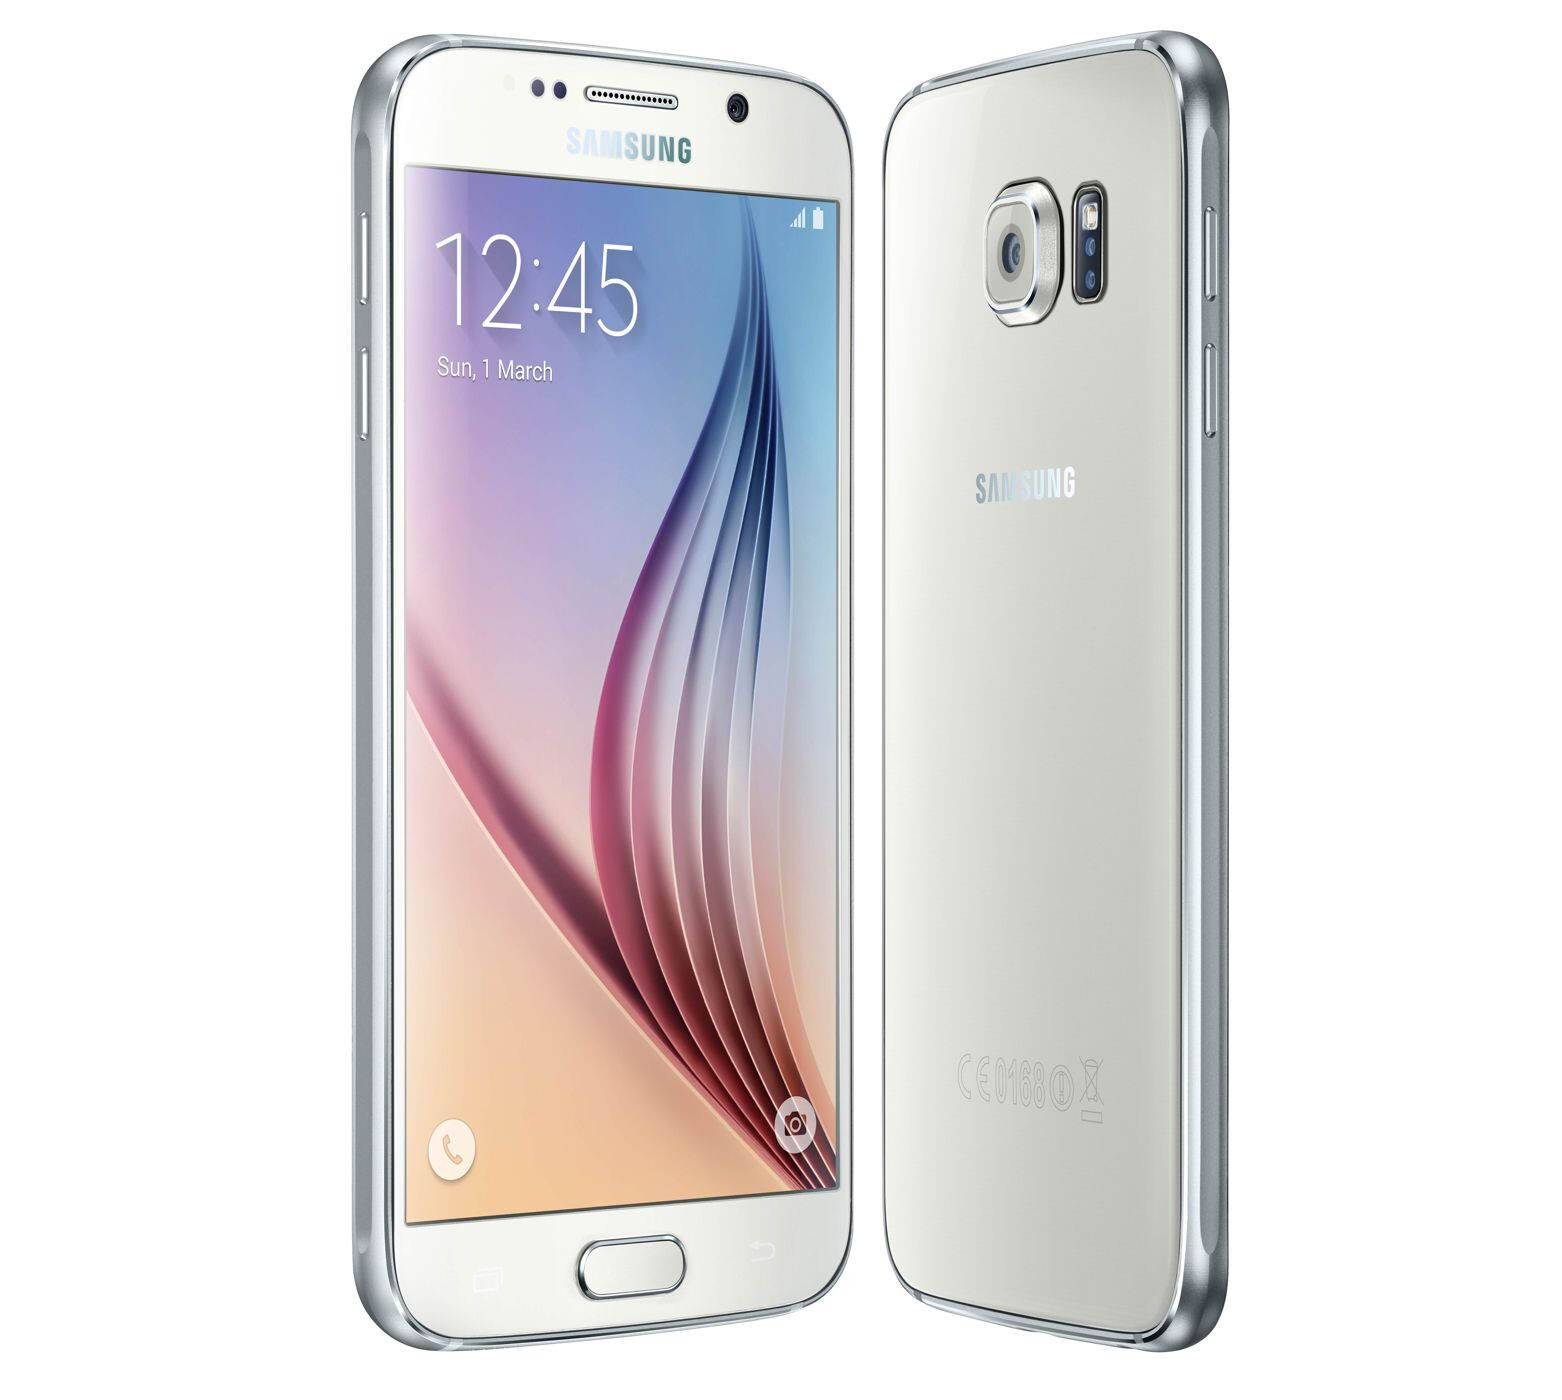 ... stock samsung galaxy s6 32gb white pearl mobile phone samsung s6 wh 15